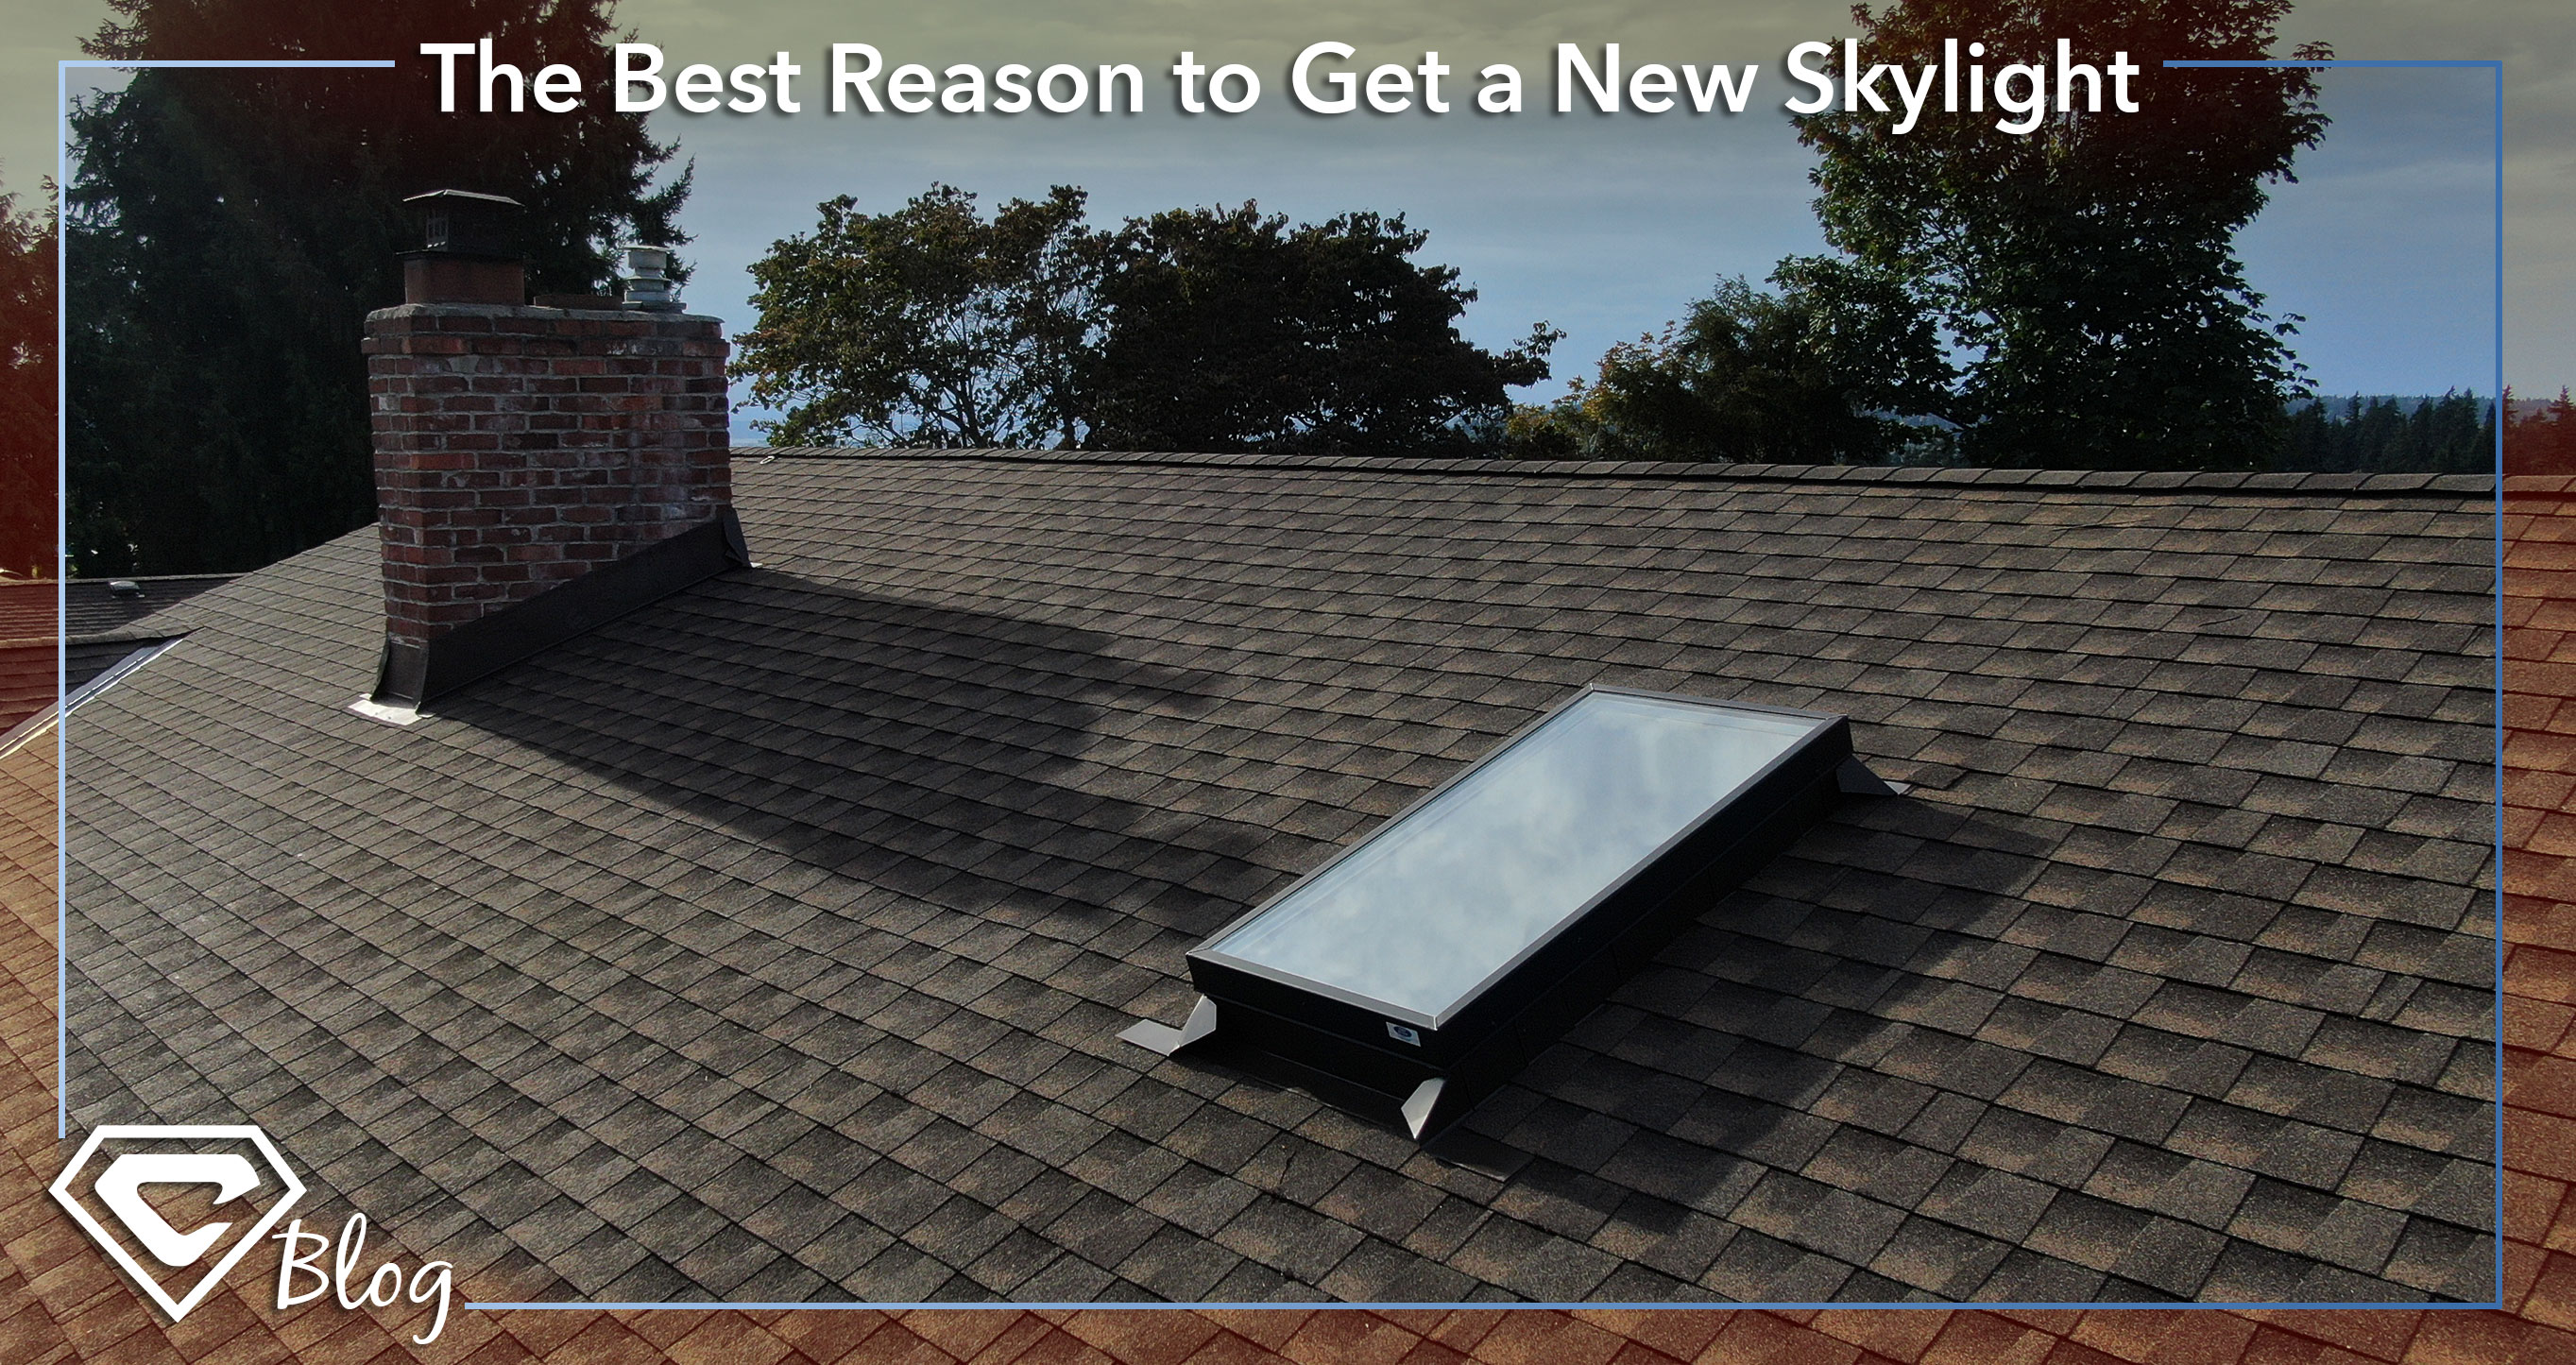 roofing blog – The Best Reason to Get a New Skylight